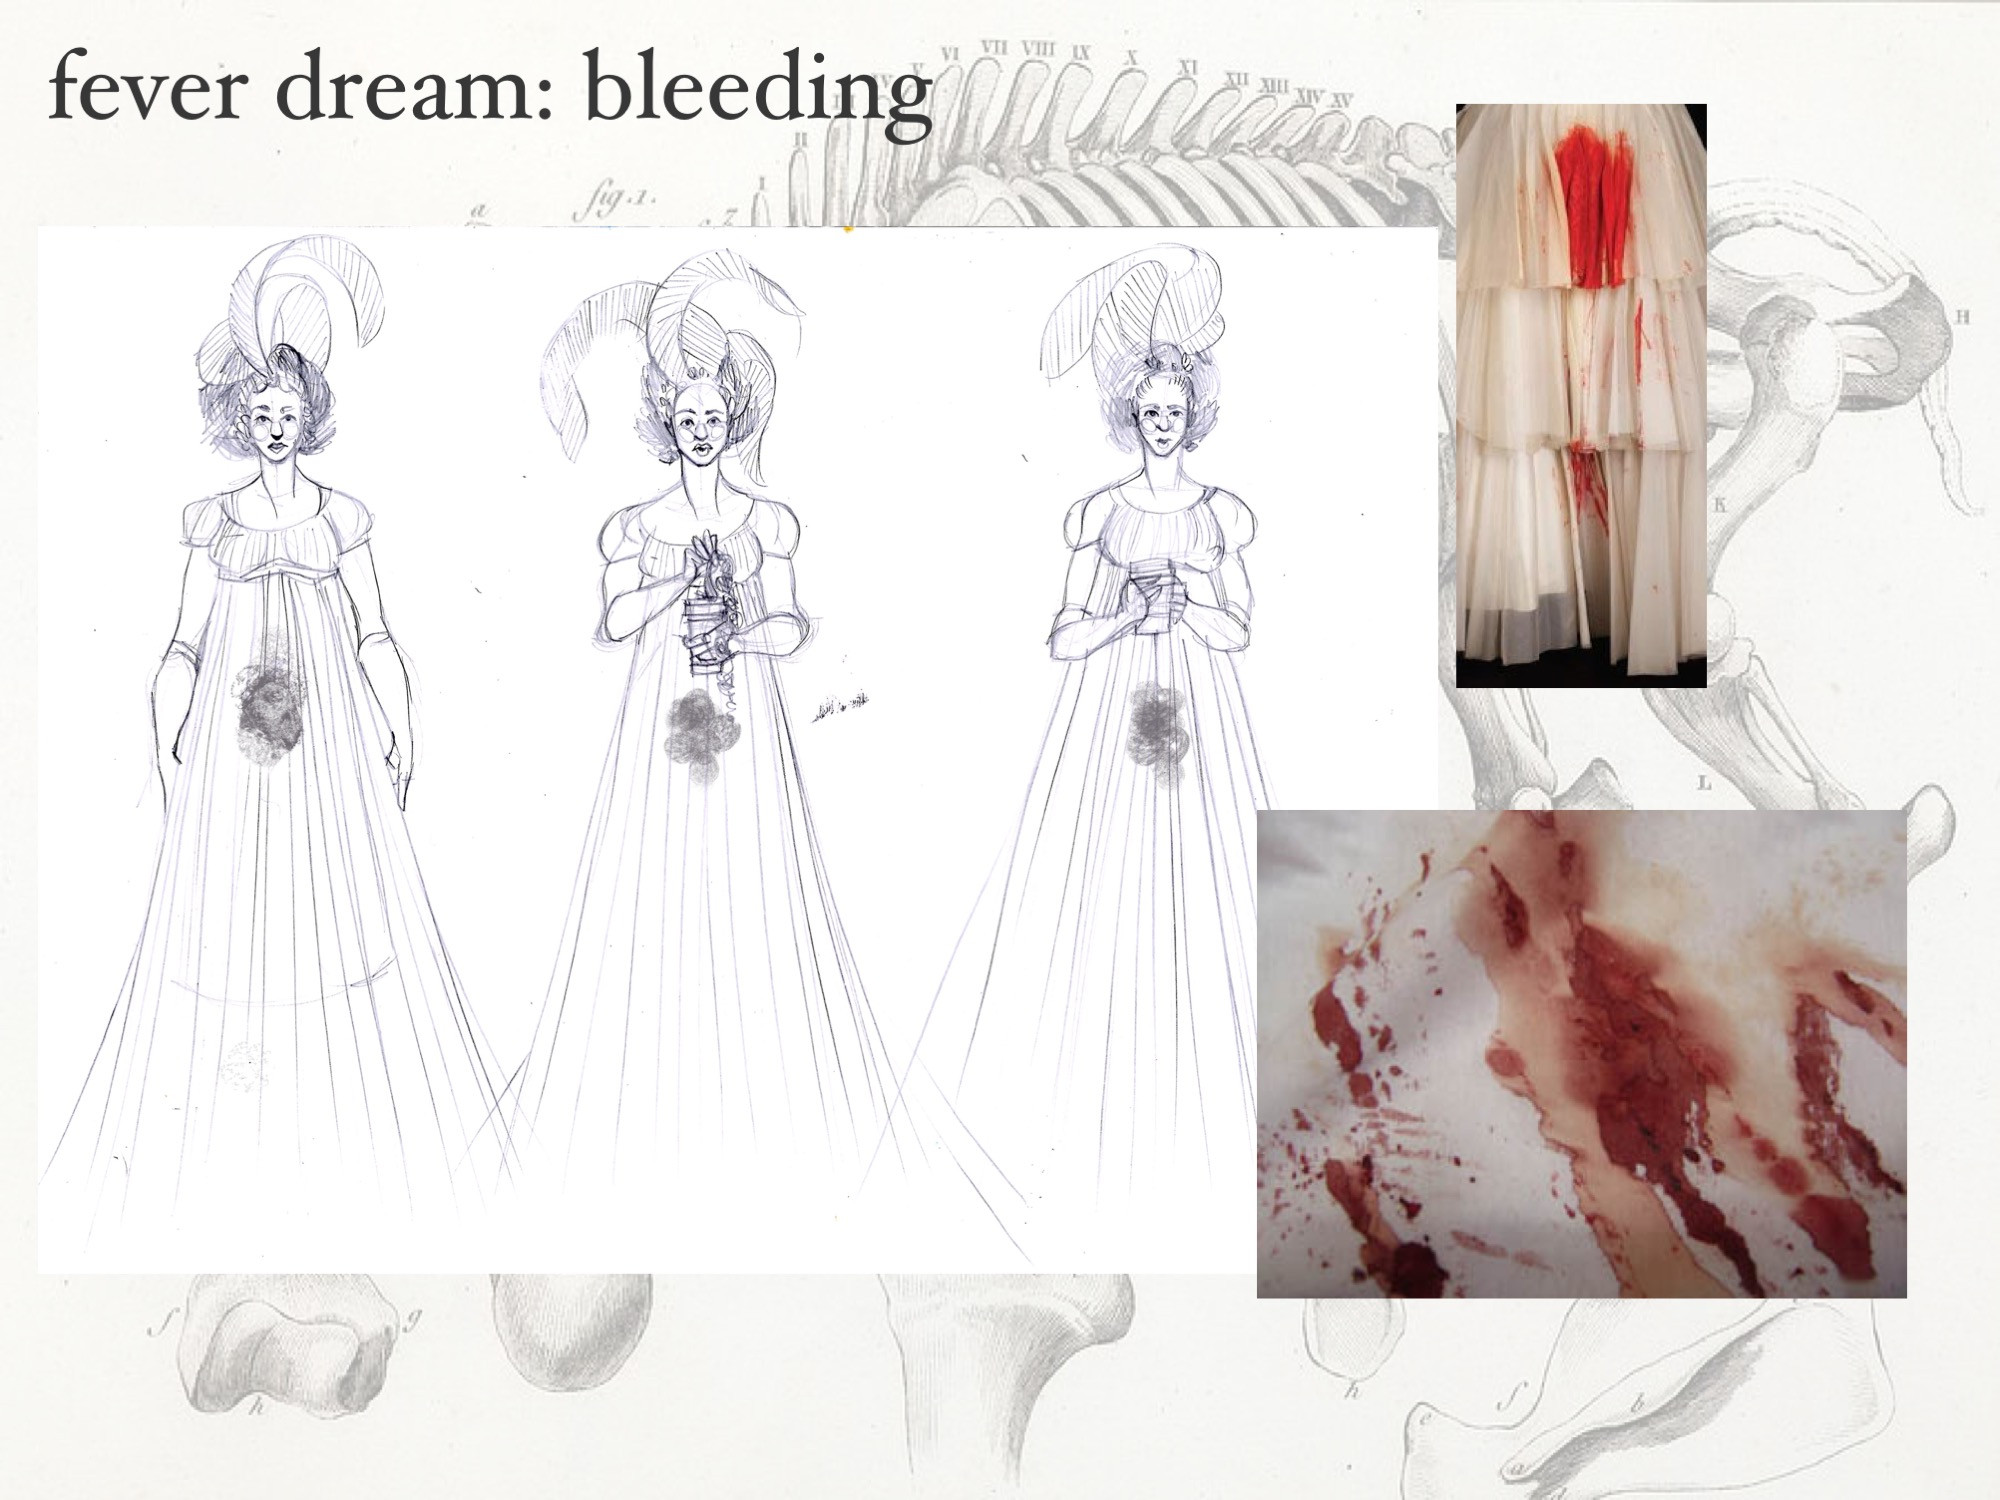 These dresses bled; some distressing references are above.